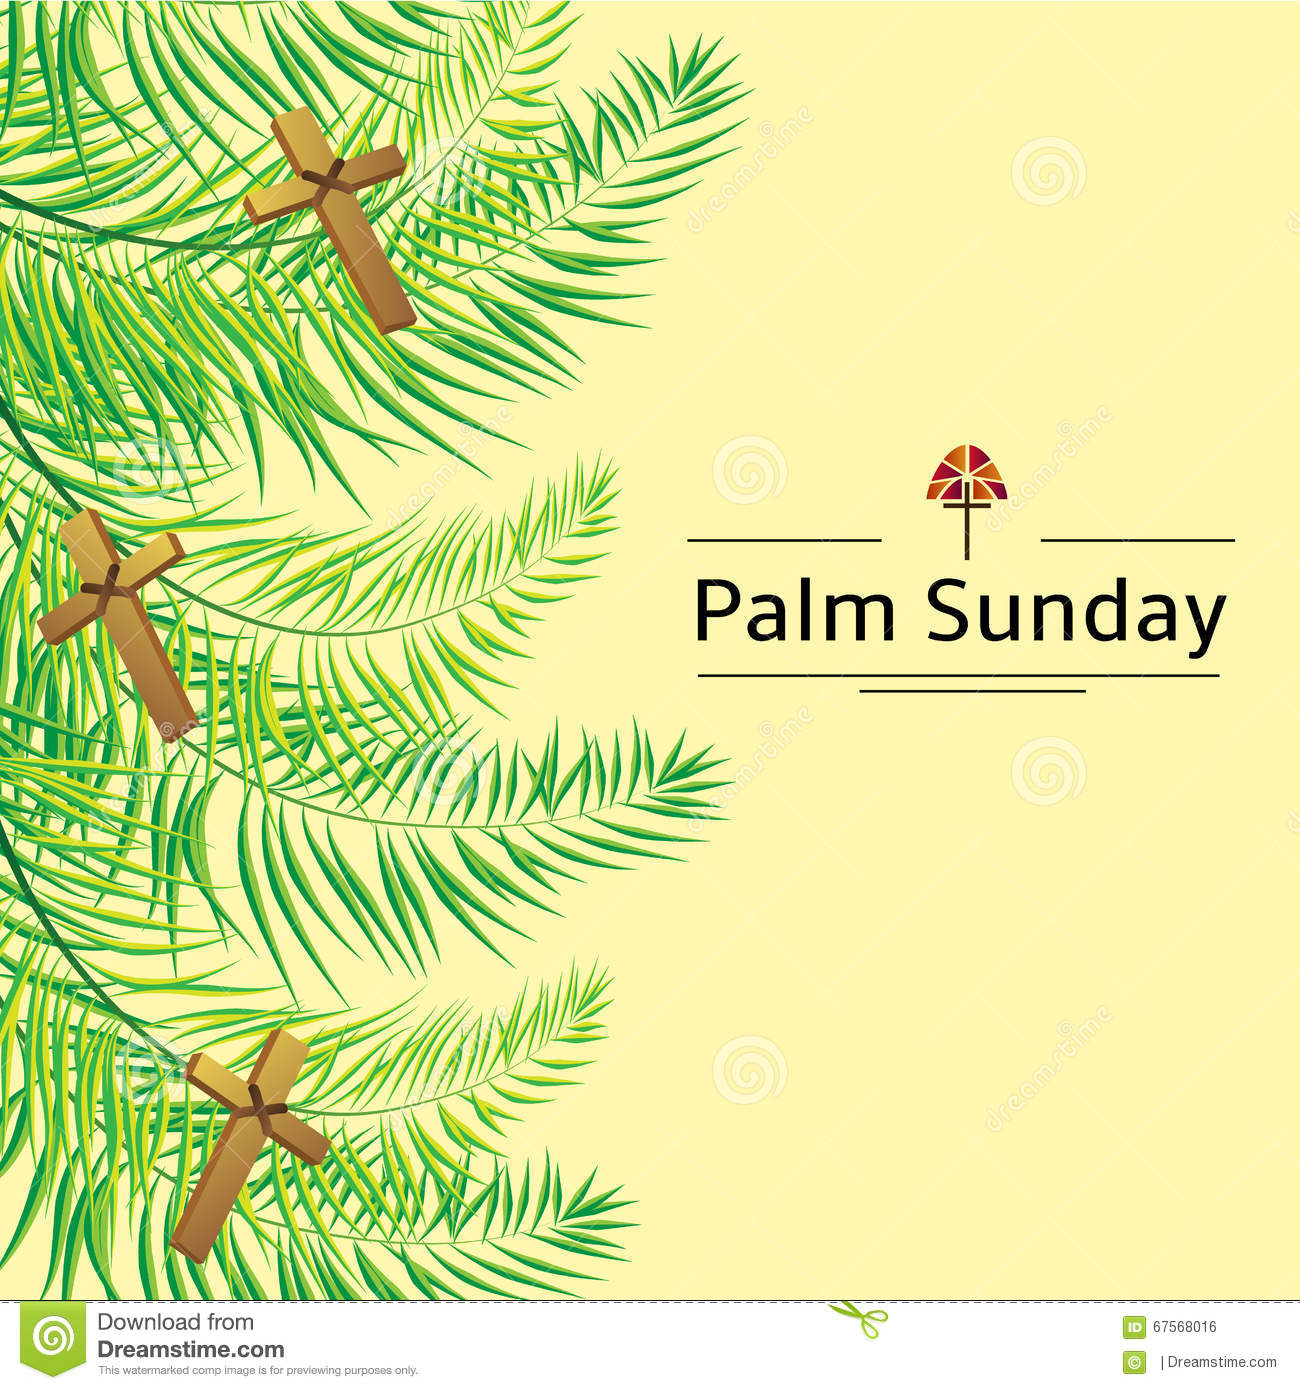 Discussion on this topic: How to Make a Palm Frond Cross, how-to-make-a-palm-frond-cross/